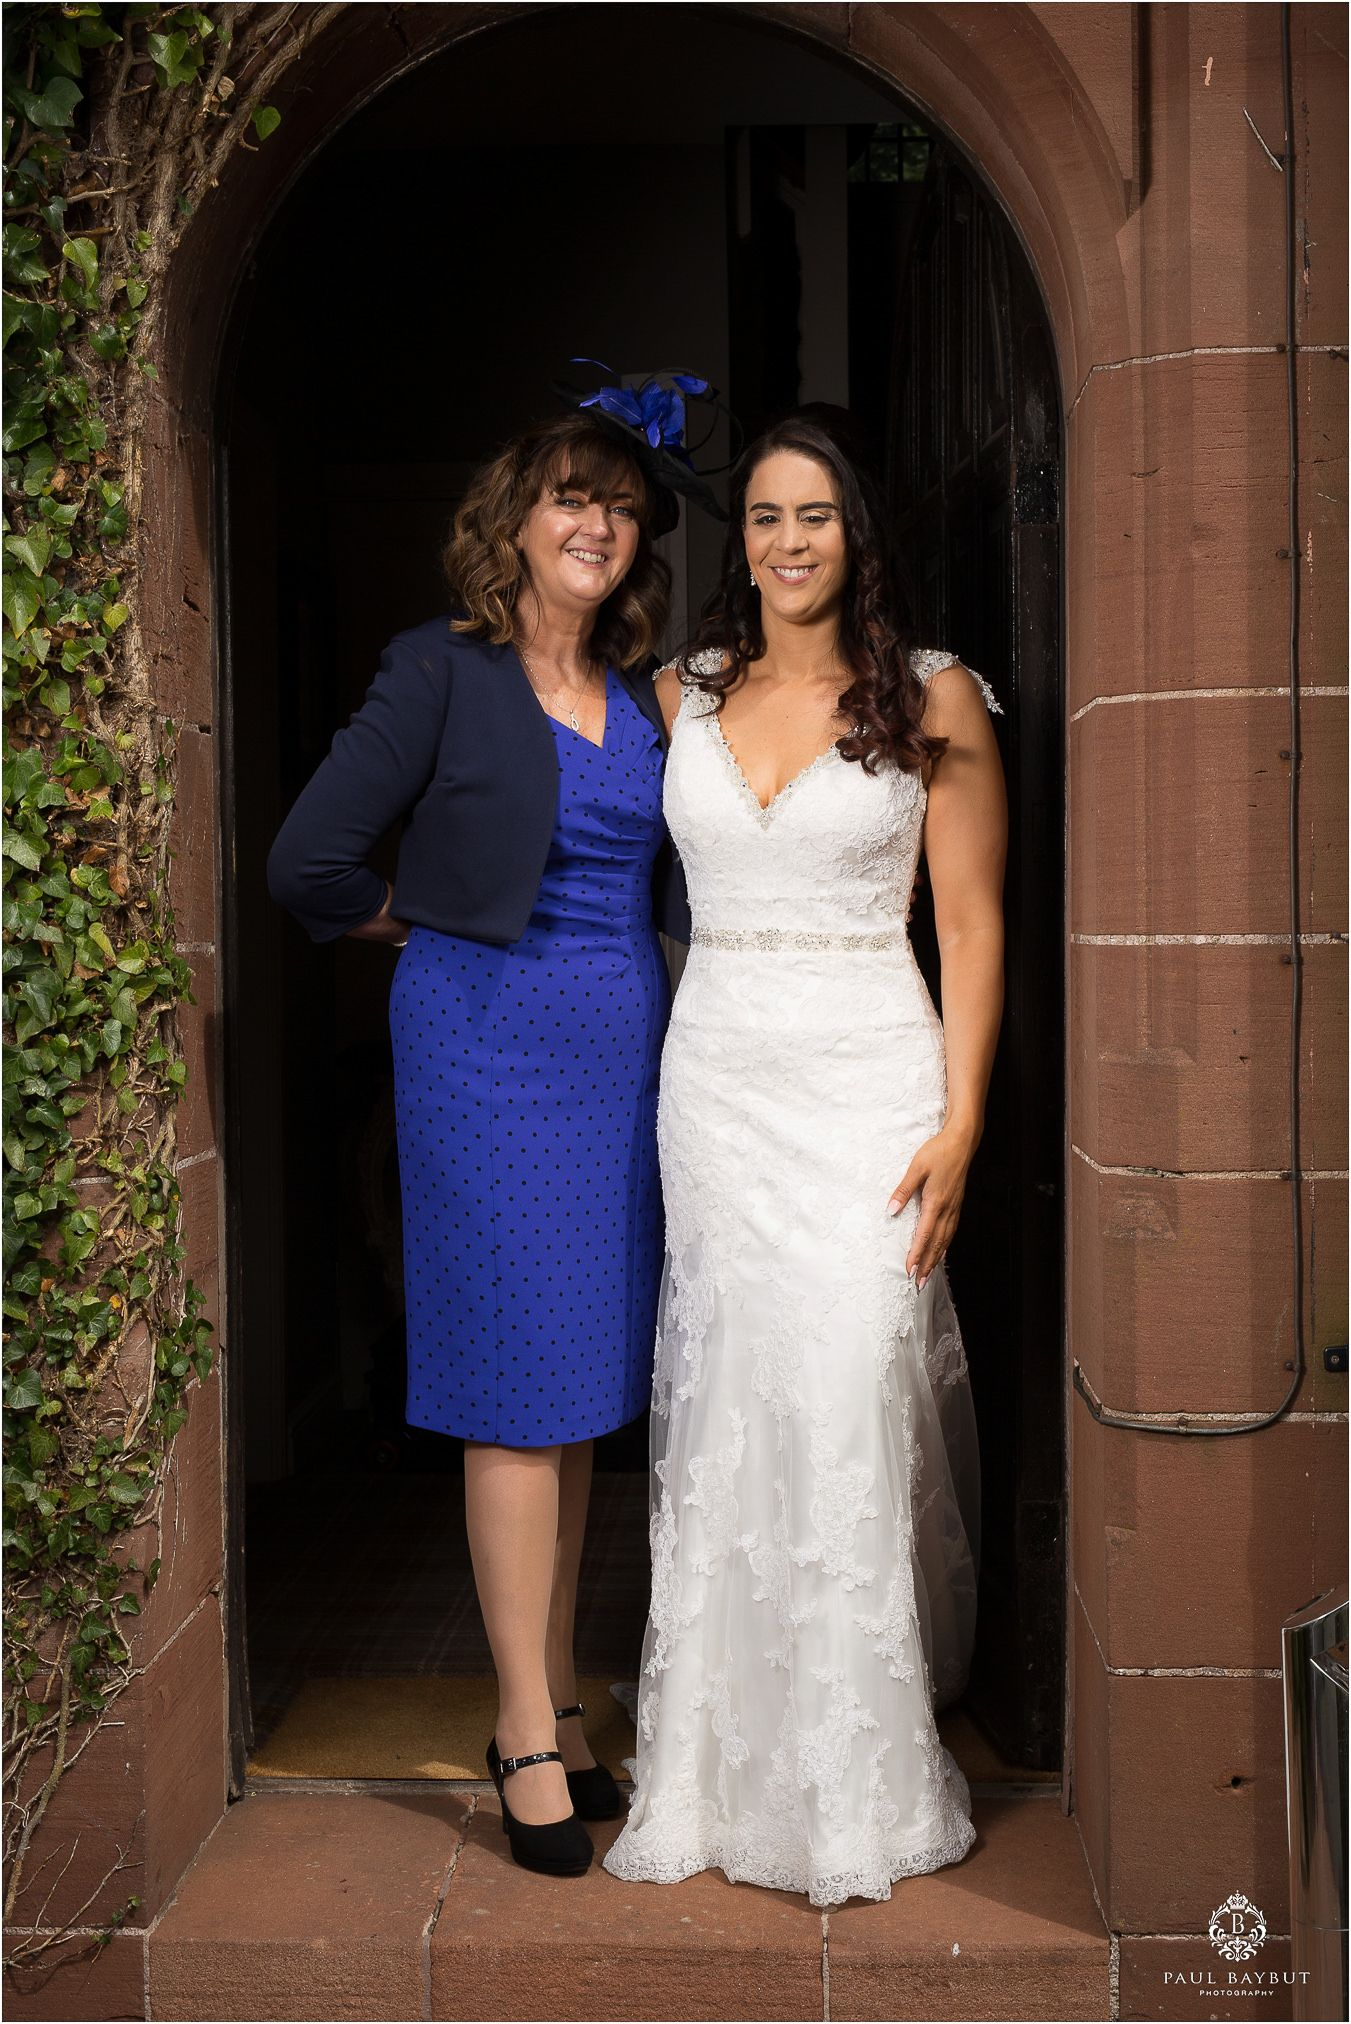 Mother in blue dress and daughter in white wedding dress stand in a doorway for a photograph